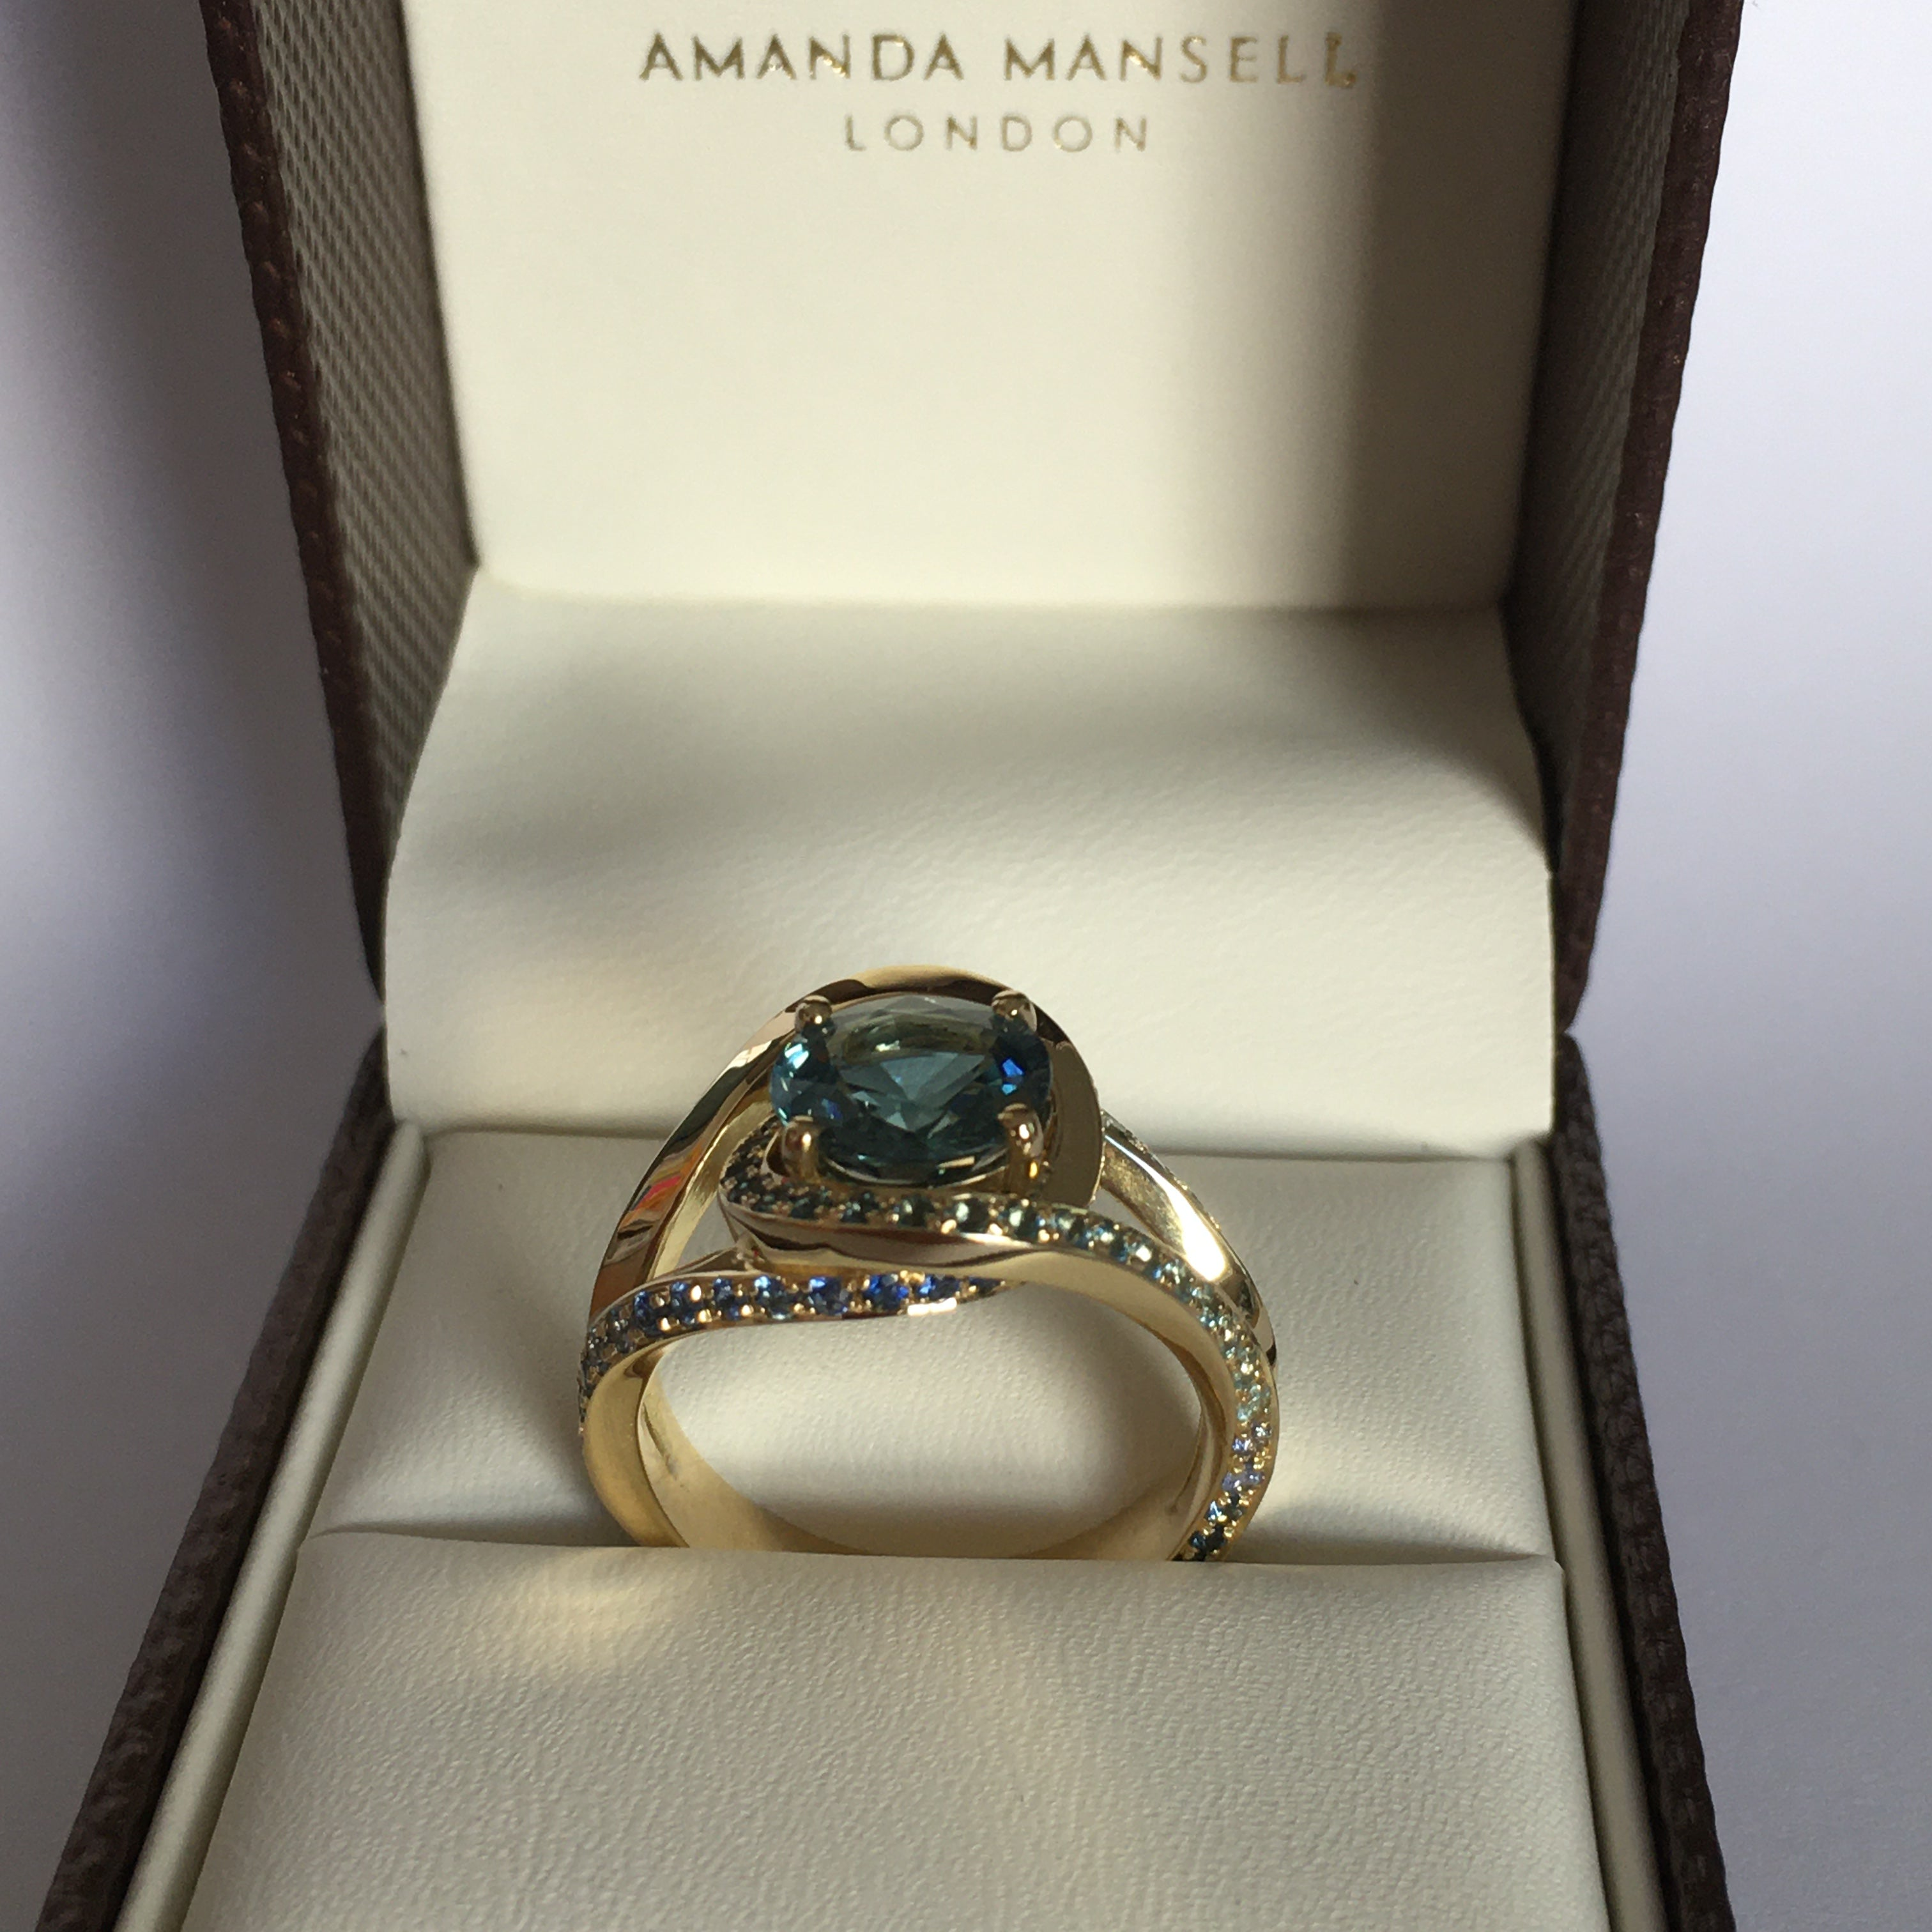 Ghazala finished remodelled bespoke 18ct gold and sapphire ring